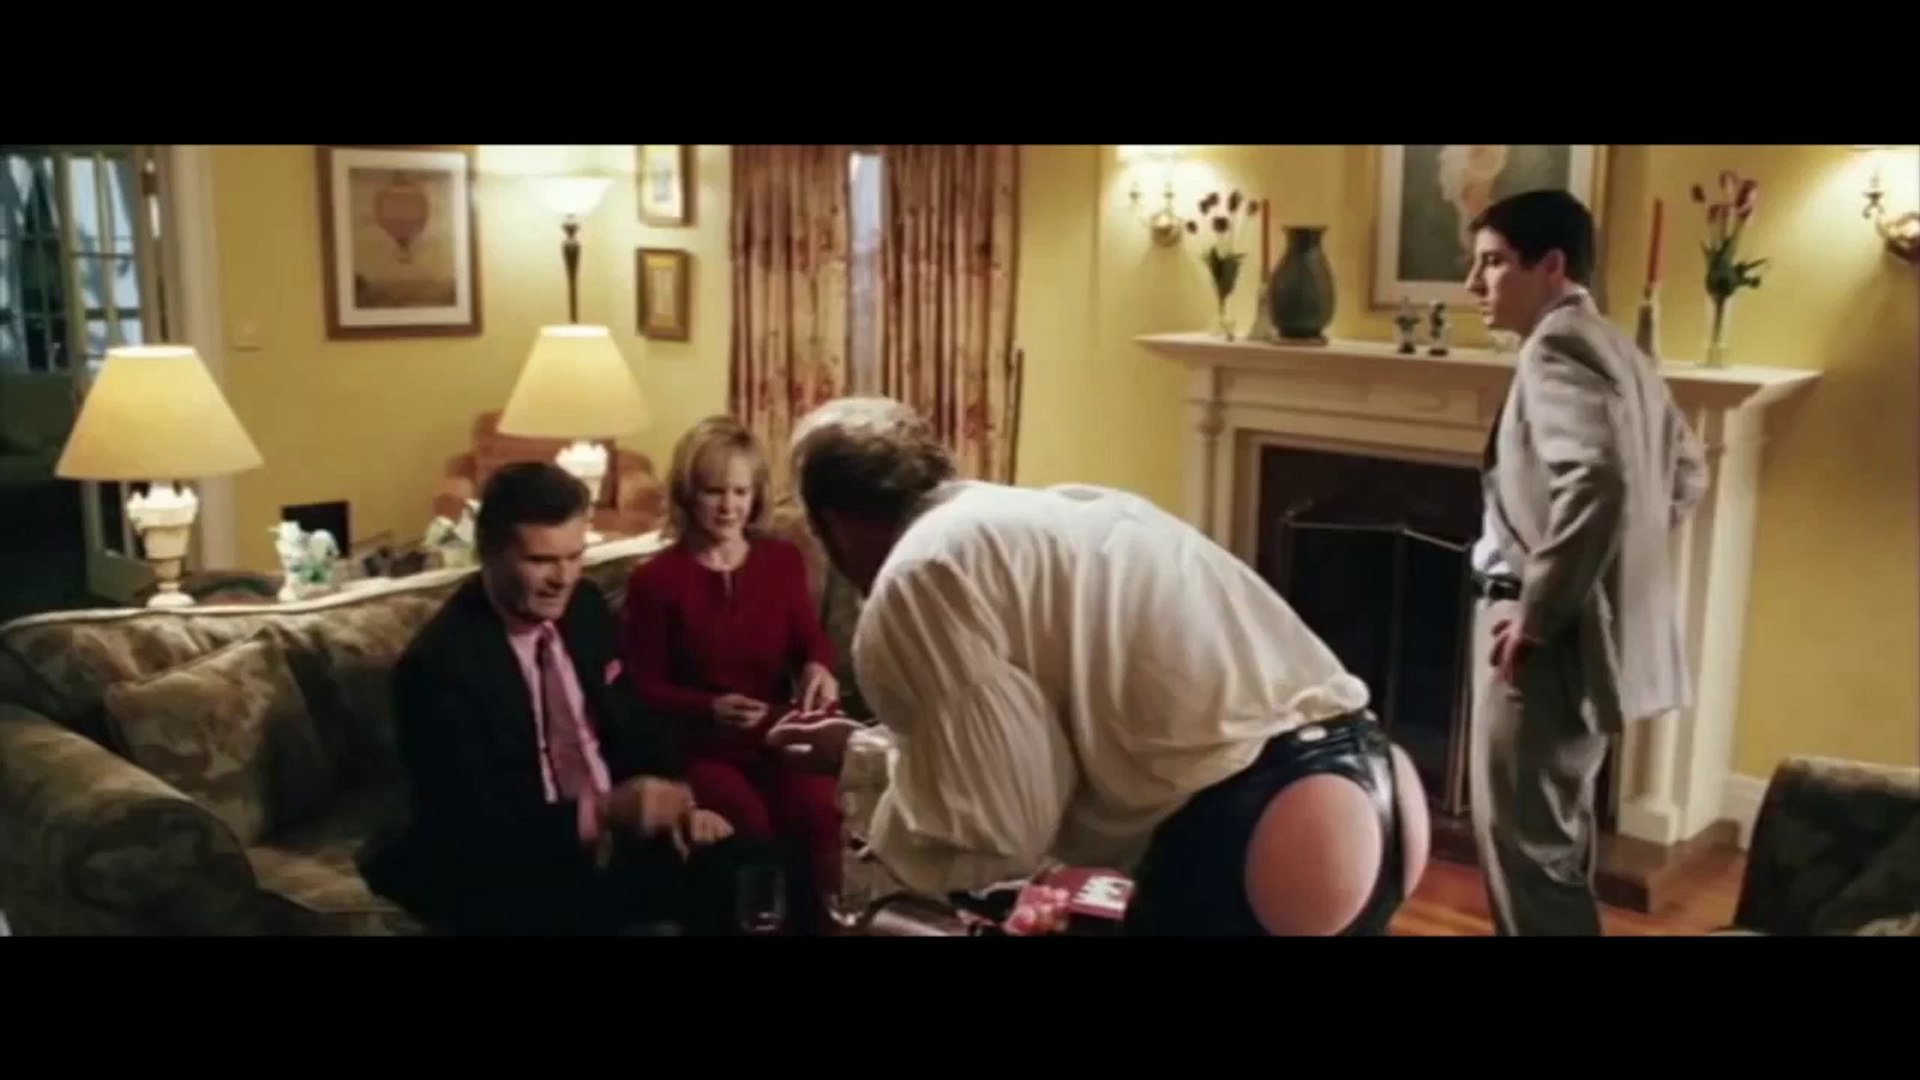 American Pie The Wedding Nude Scenes american pie: interrupted bachelor party